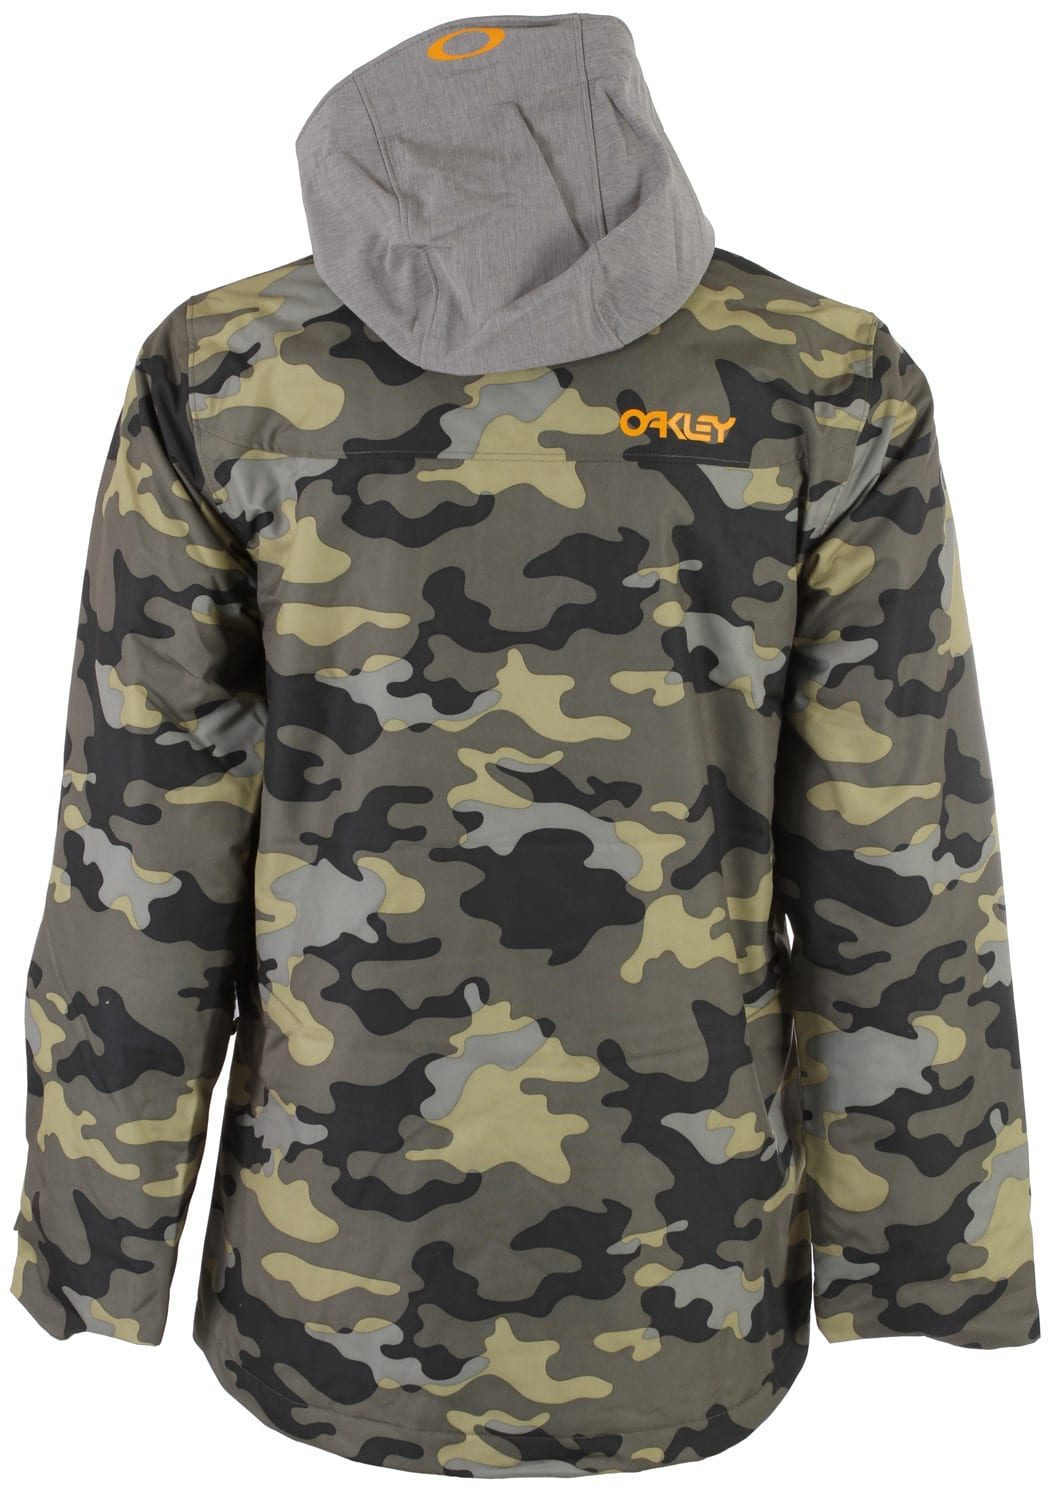 Oakley Division Insulated Snowboard Jacket - thumbnail 2